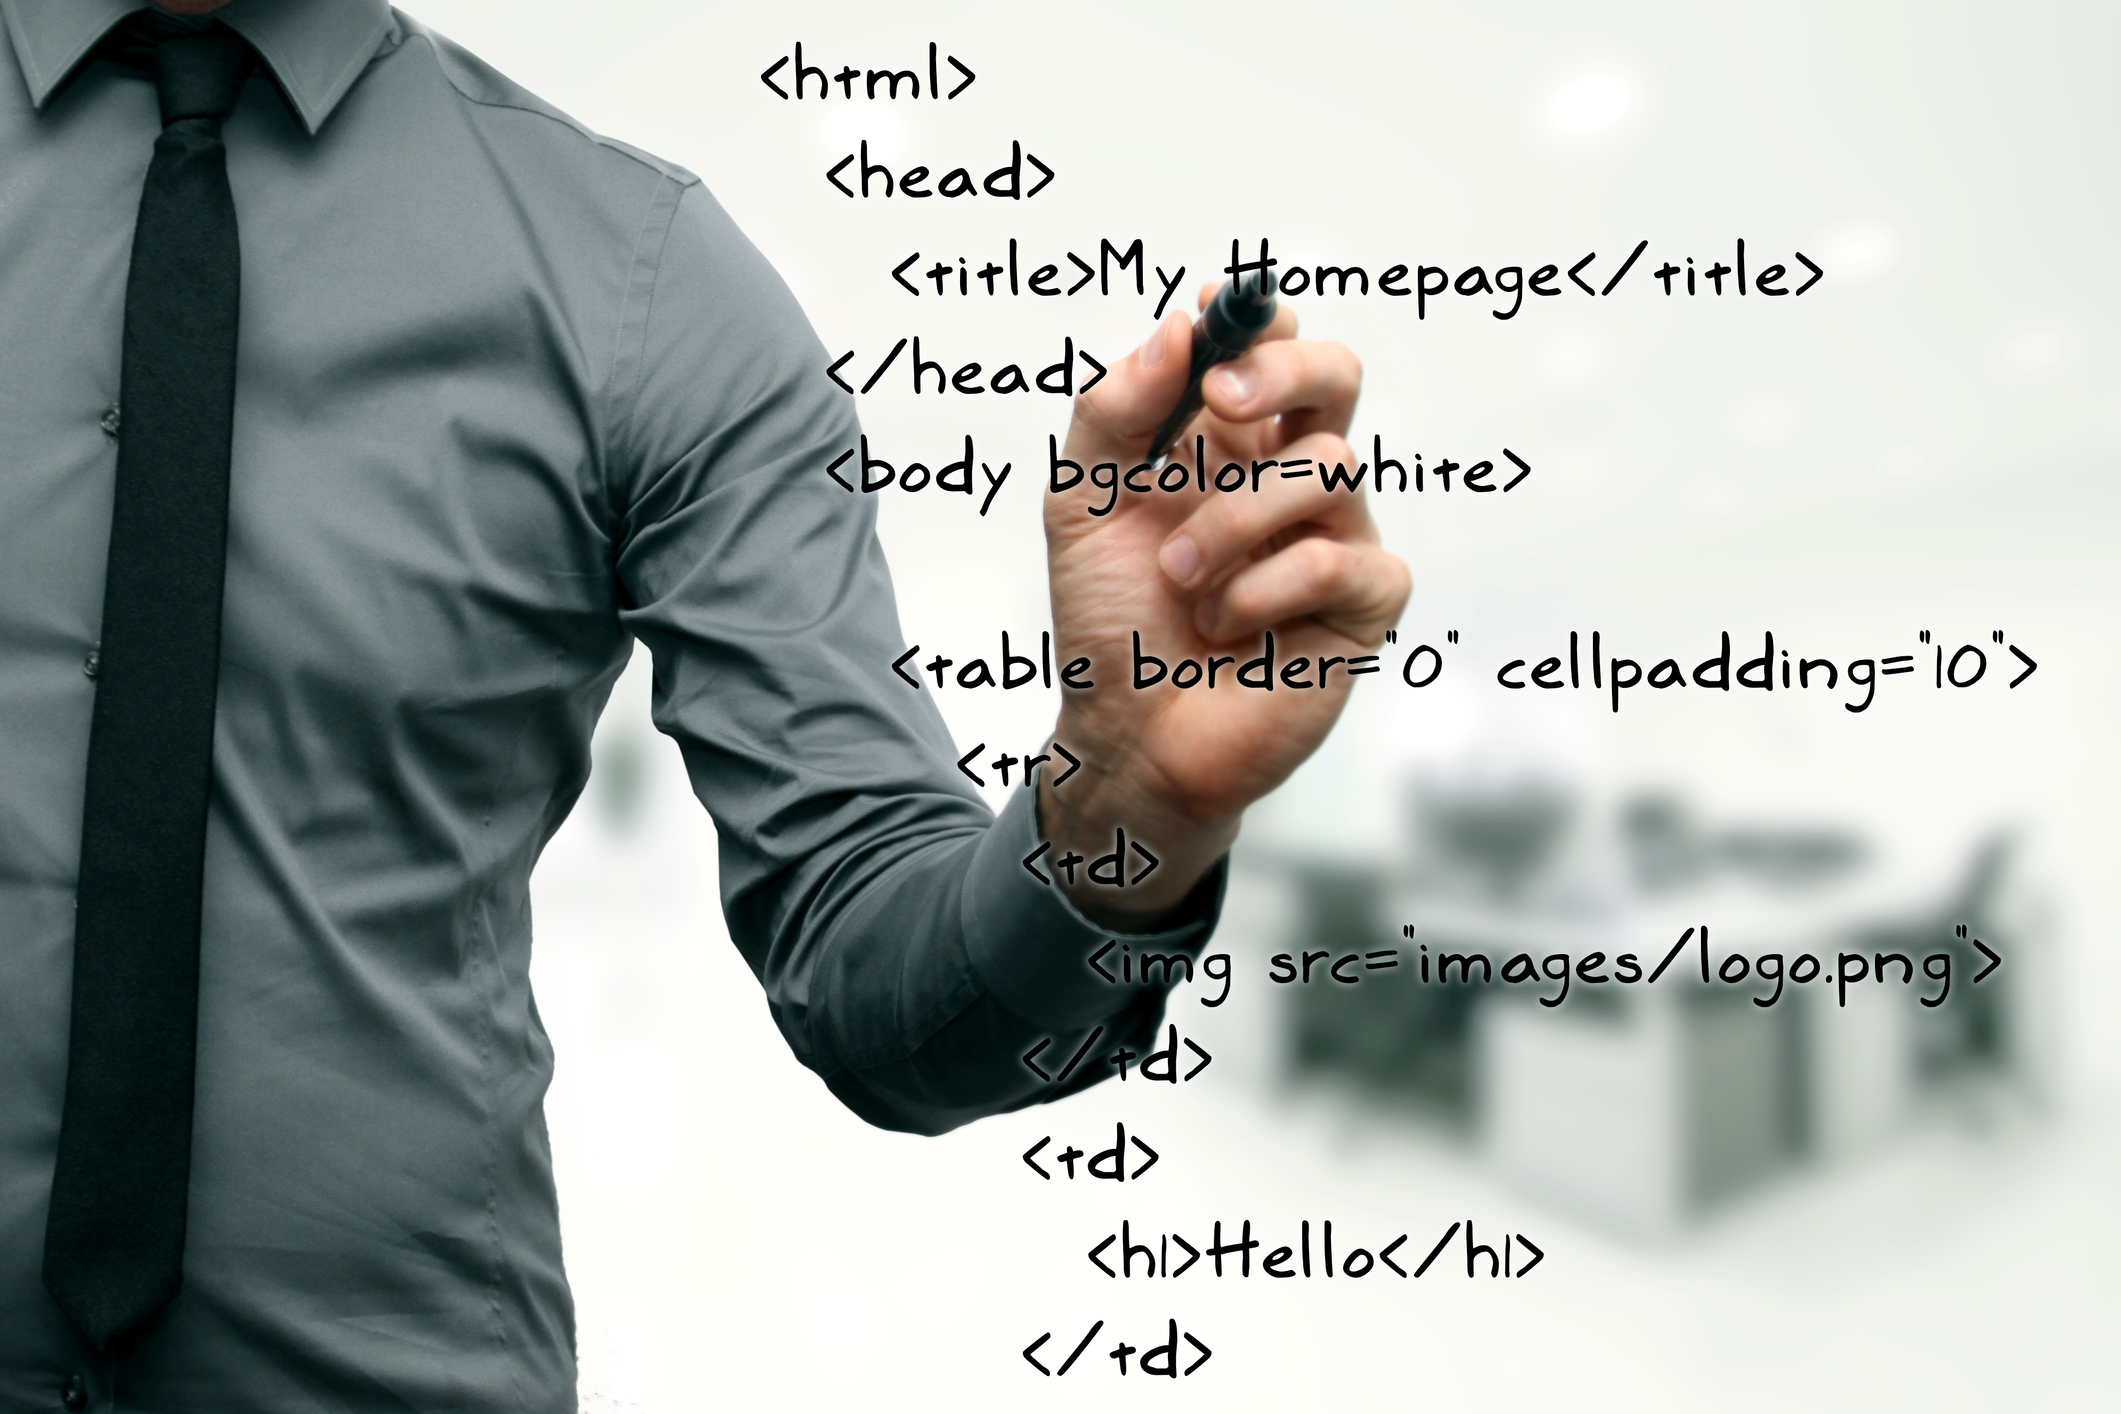 HTML Code Example on Whiteboard